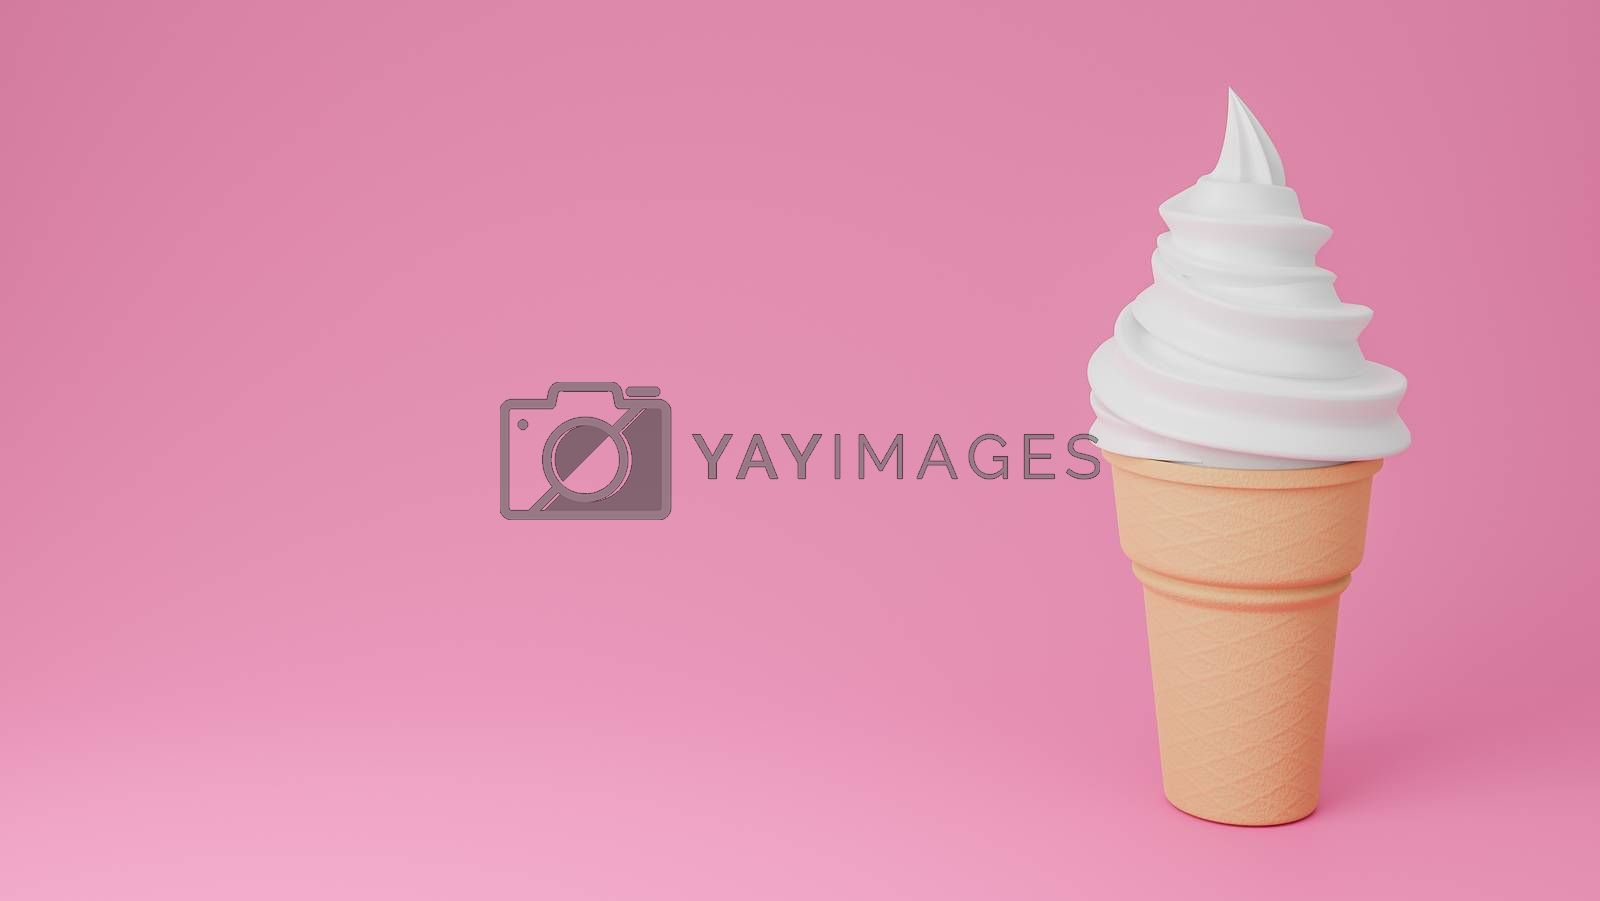 Soft serve ice cream of vanilla or milk flavours on crispy cone on pink background.,3d model and illustration.